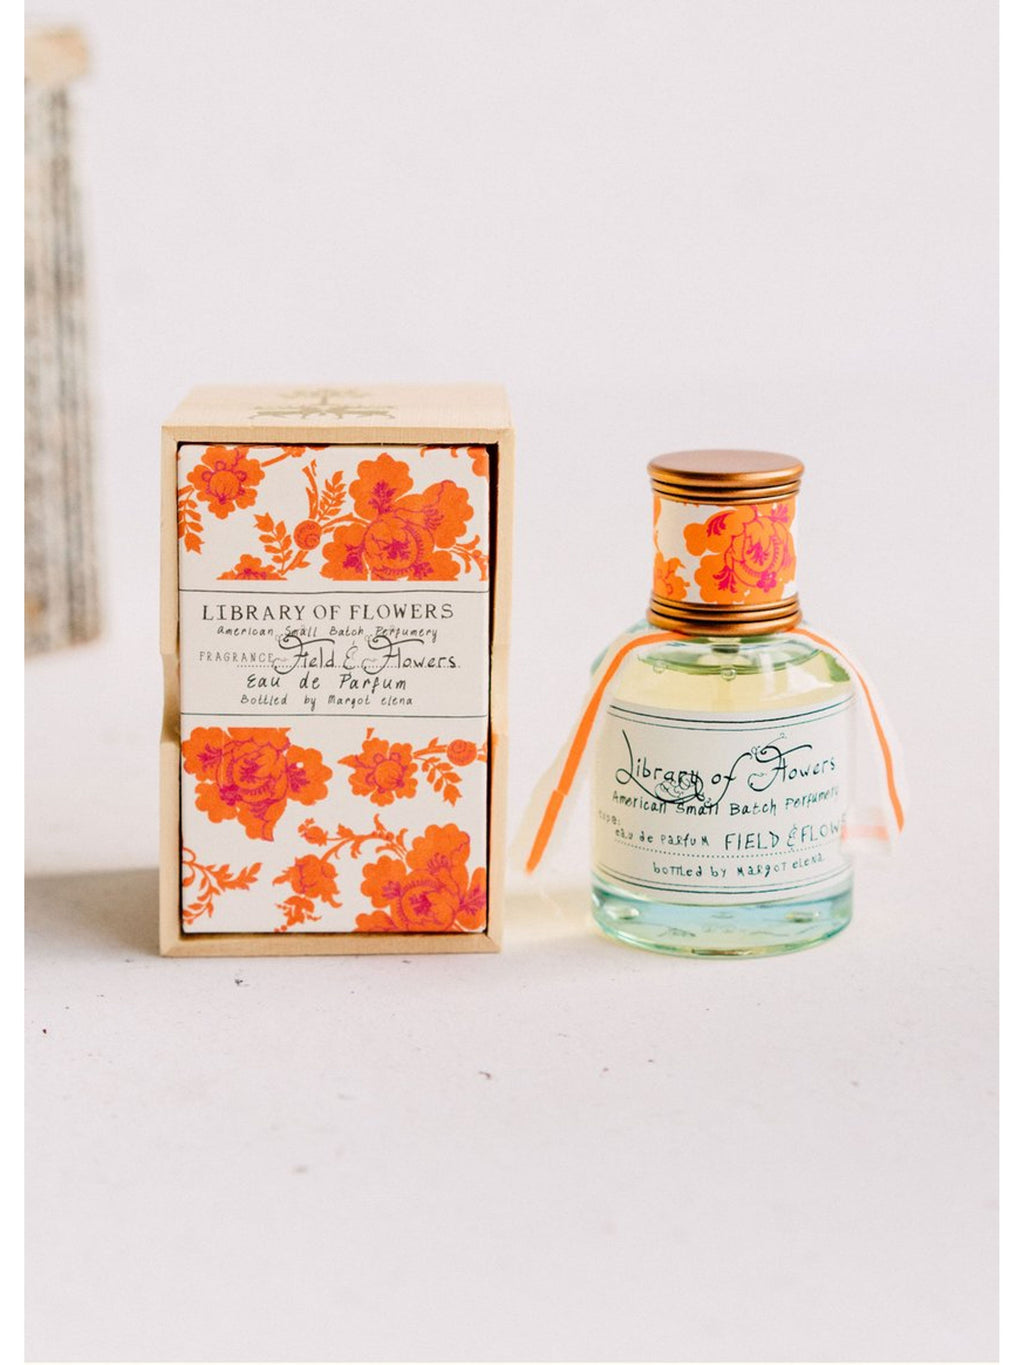 Field & Flowers Eau De Parfum - Library of Flowers